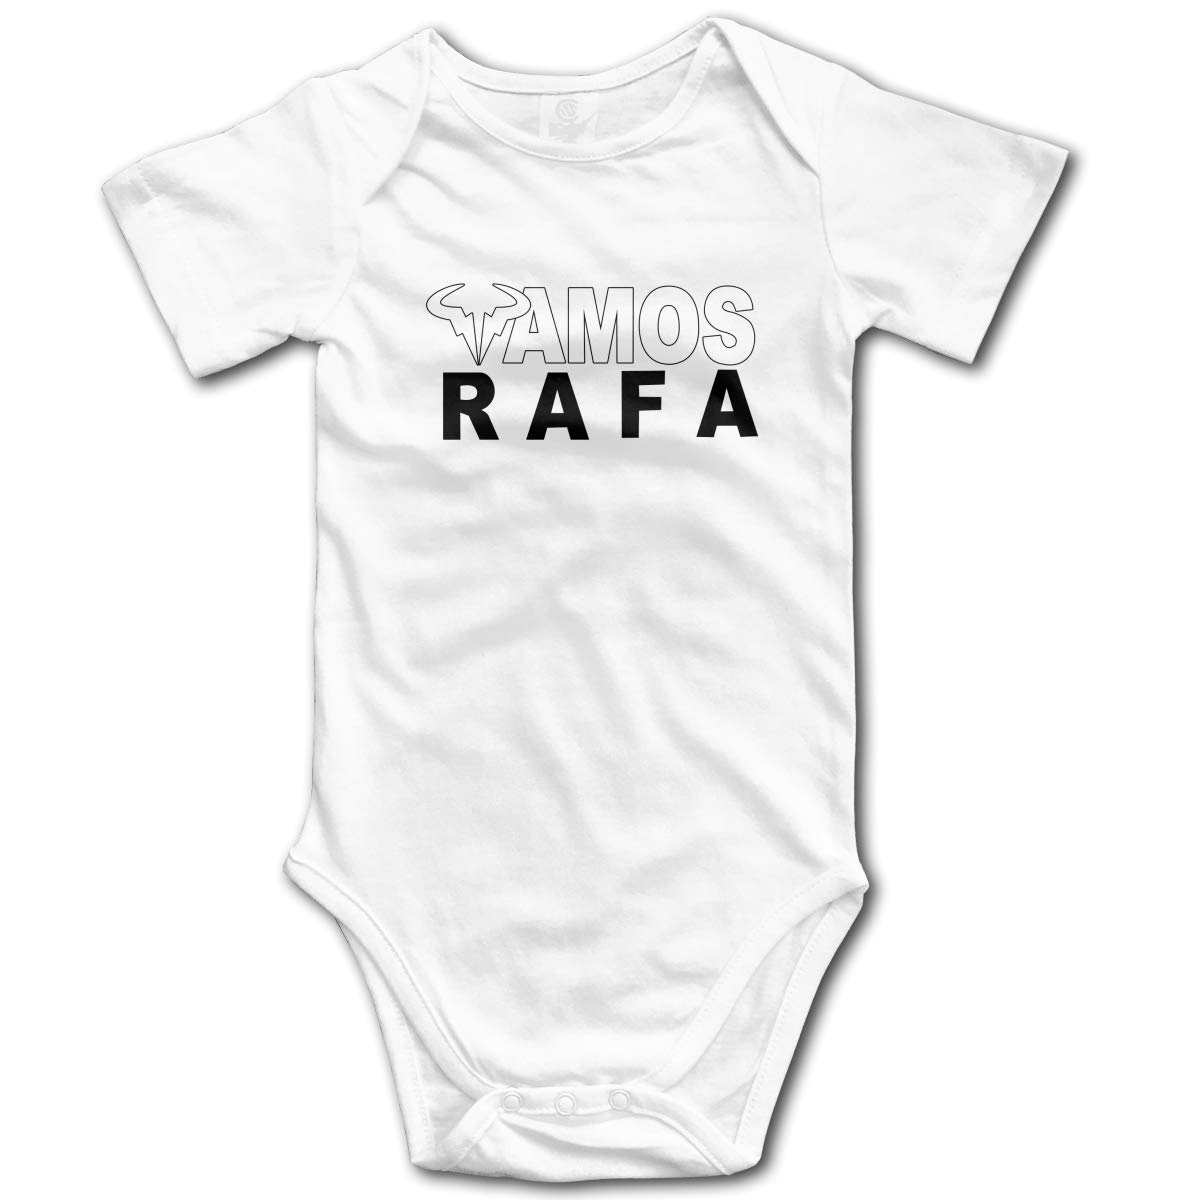 Koucas Baby Girls Boys RAFA Vamos Rafael Nadal Logo Kids Bodysuits Short Sleeve Cotton Tshirt T Shirt Tollder Clothes White 18M by Koucas